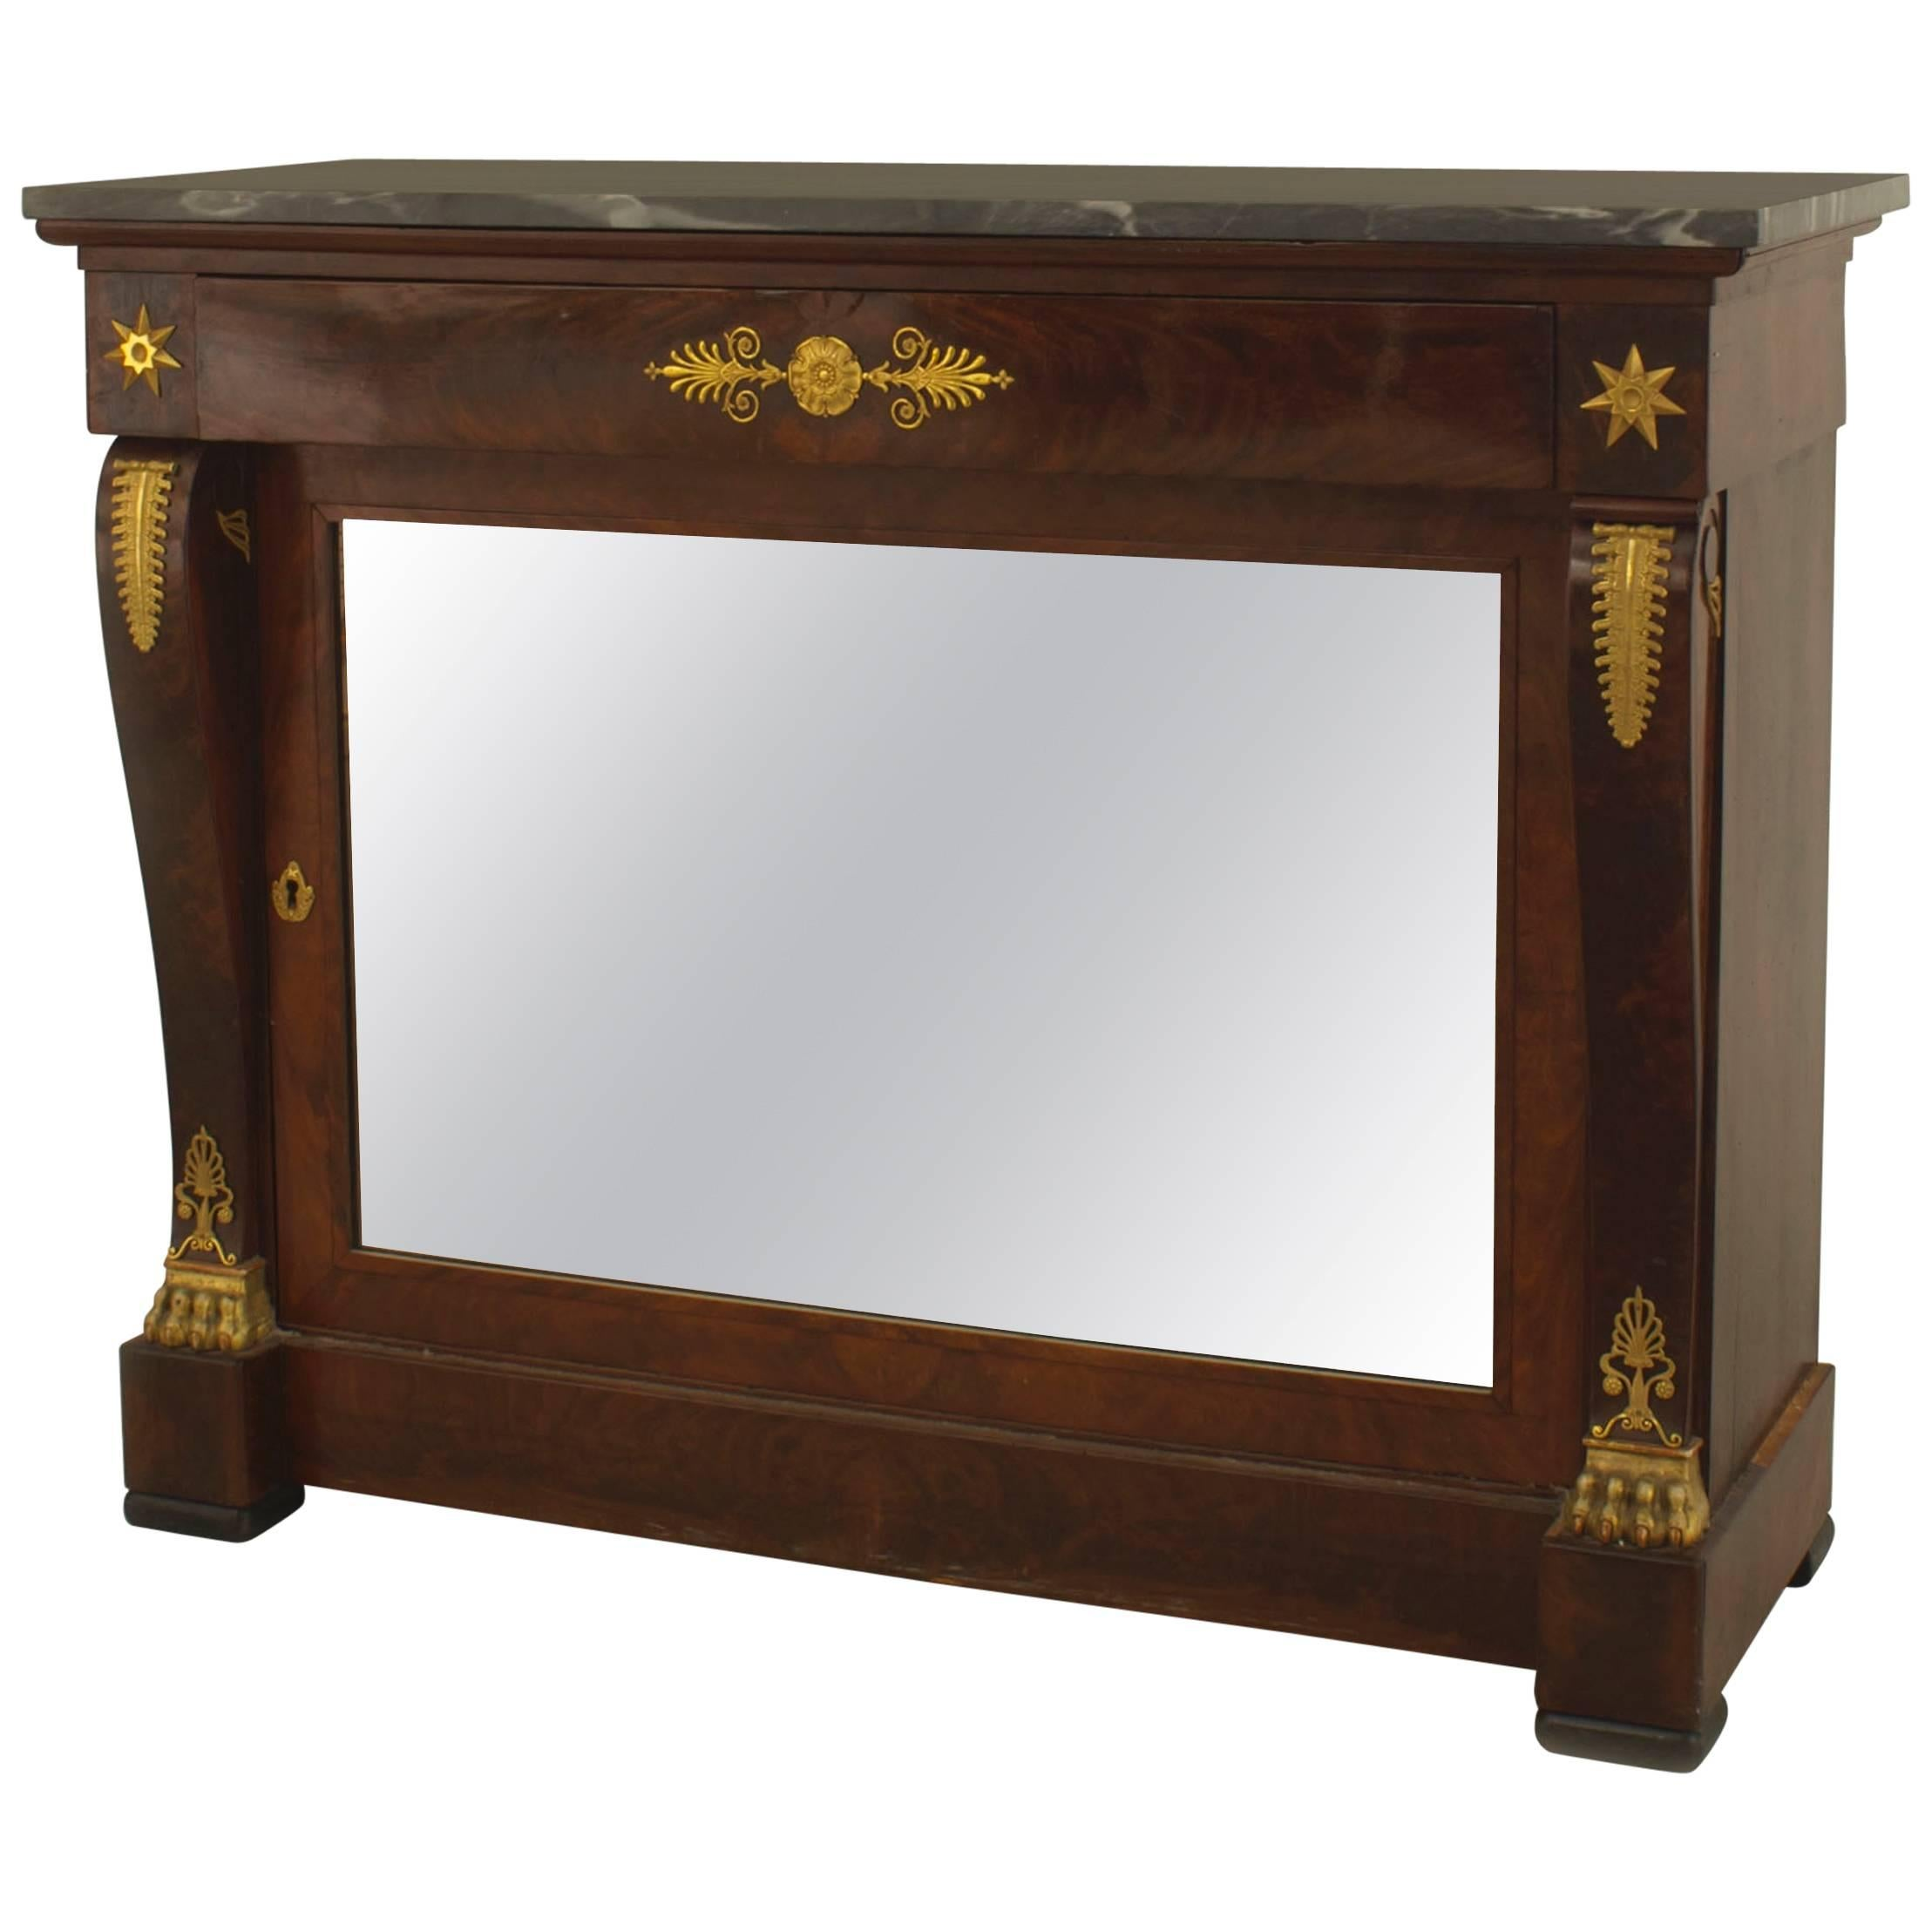 French Empire Mahogany and Mirrored Console Table